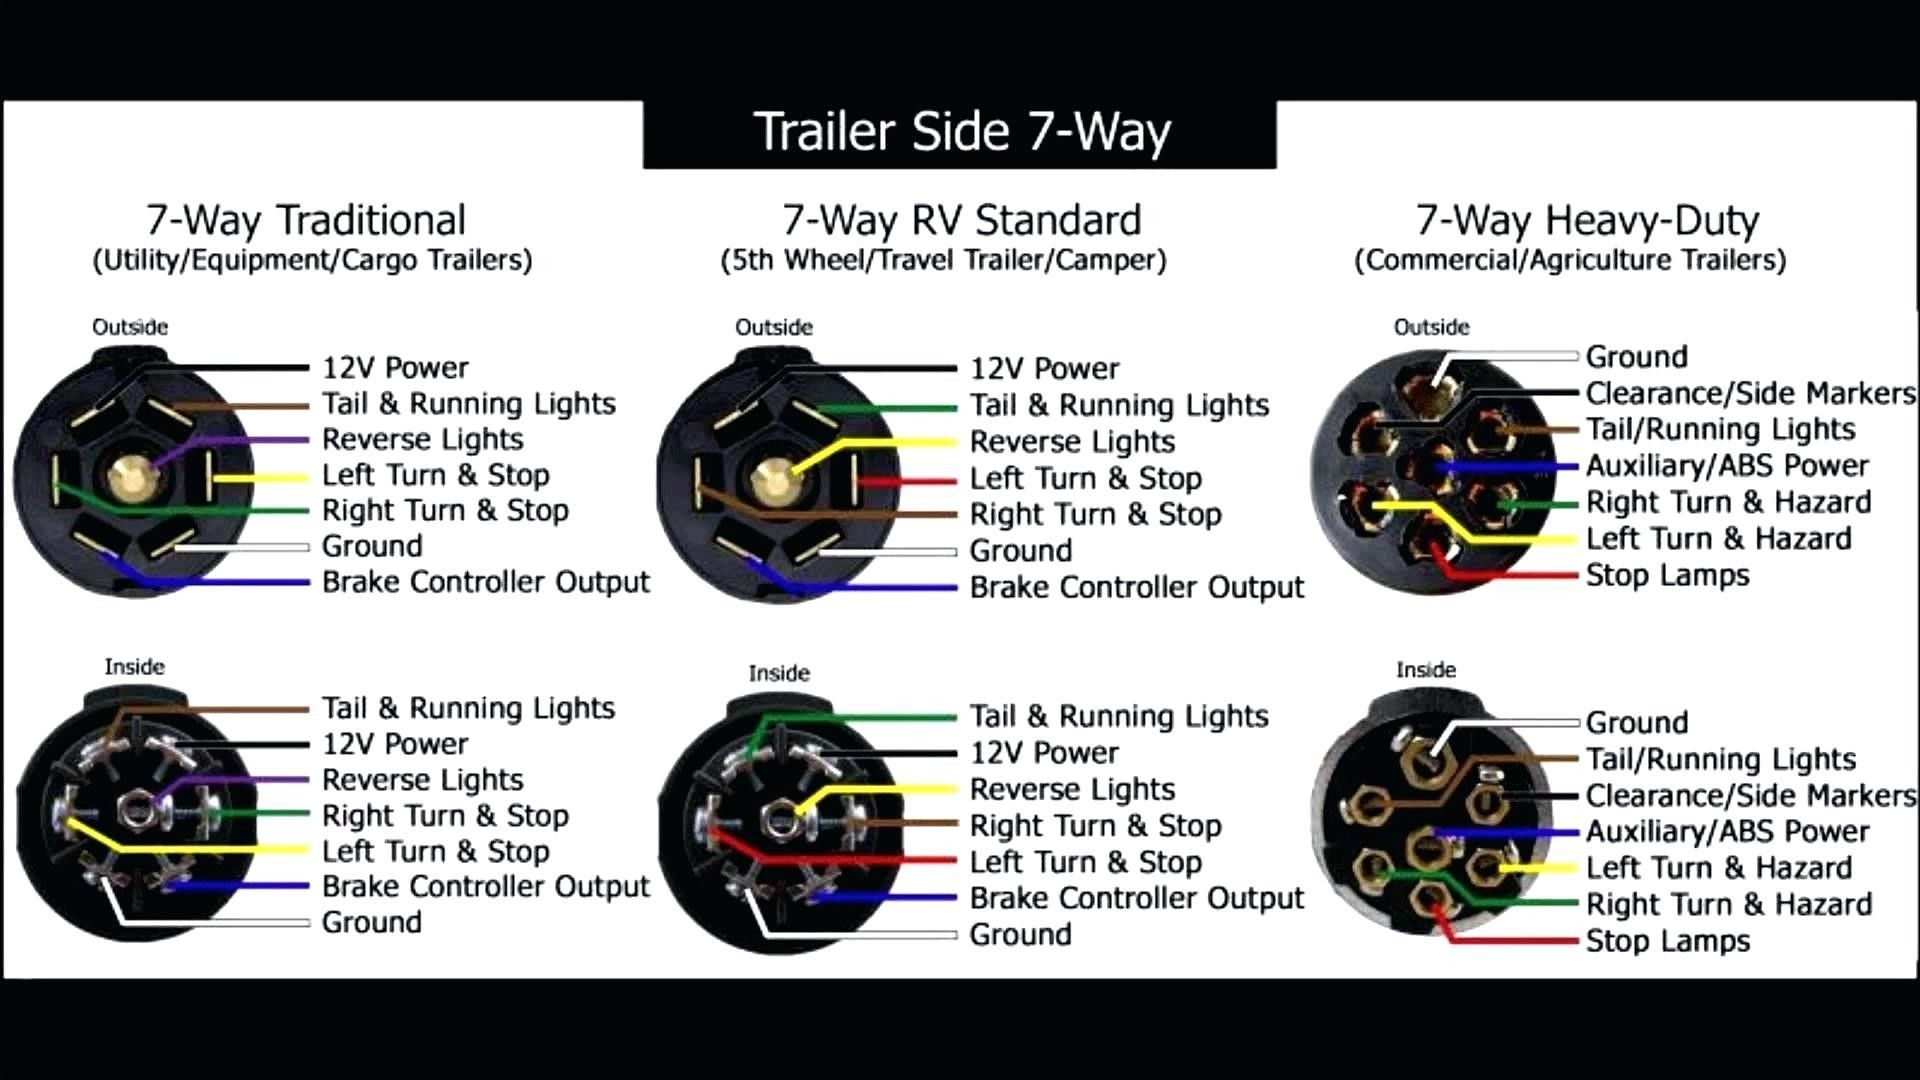 Dodge Ram 7 Pin Trailer Wiring Diagram Beautiful Dorable Hopkins Rv Plug Motif Ideas Of On Seven Pin Trailer Wiring Diagram Trailer Wiring Diagram Trailer Light Wiring Equipment Trailers